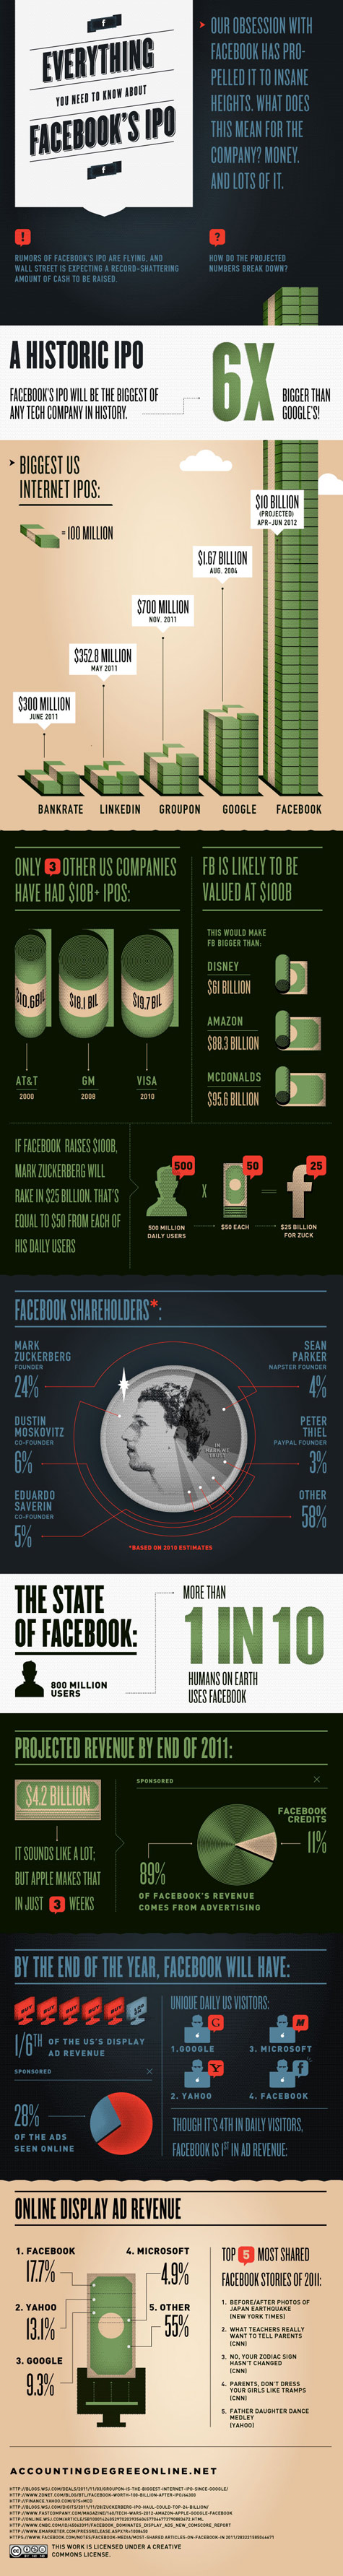 How Facebook's Expected $100 Billion IPO Breaks Down [INFOGRAPHIC]